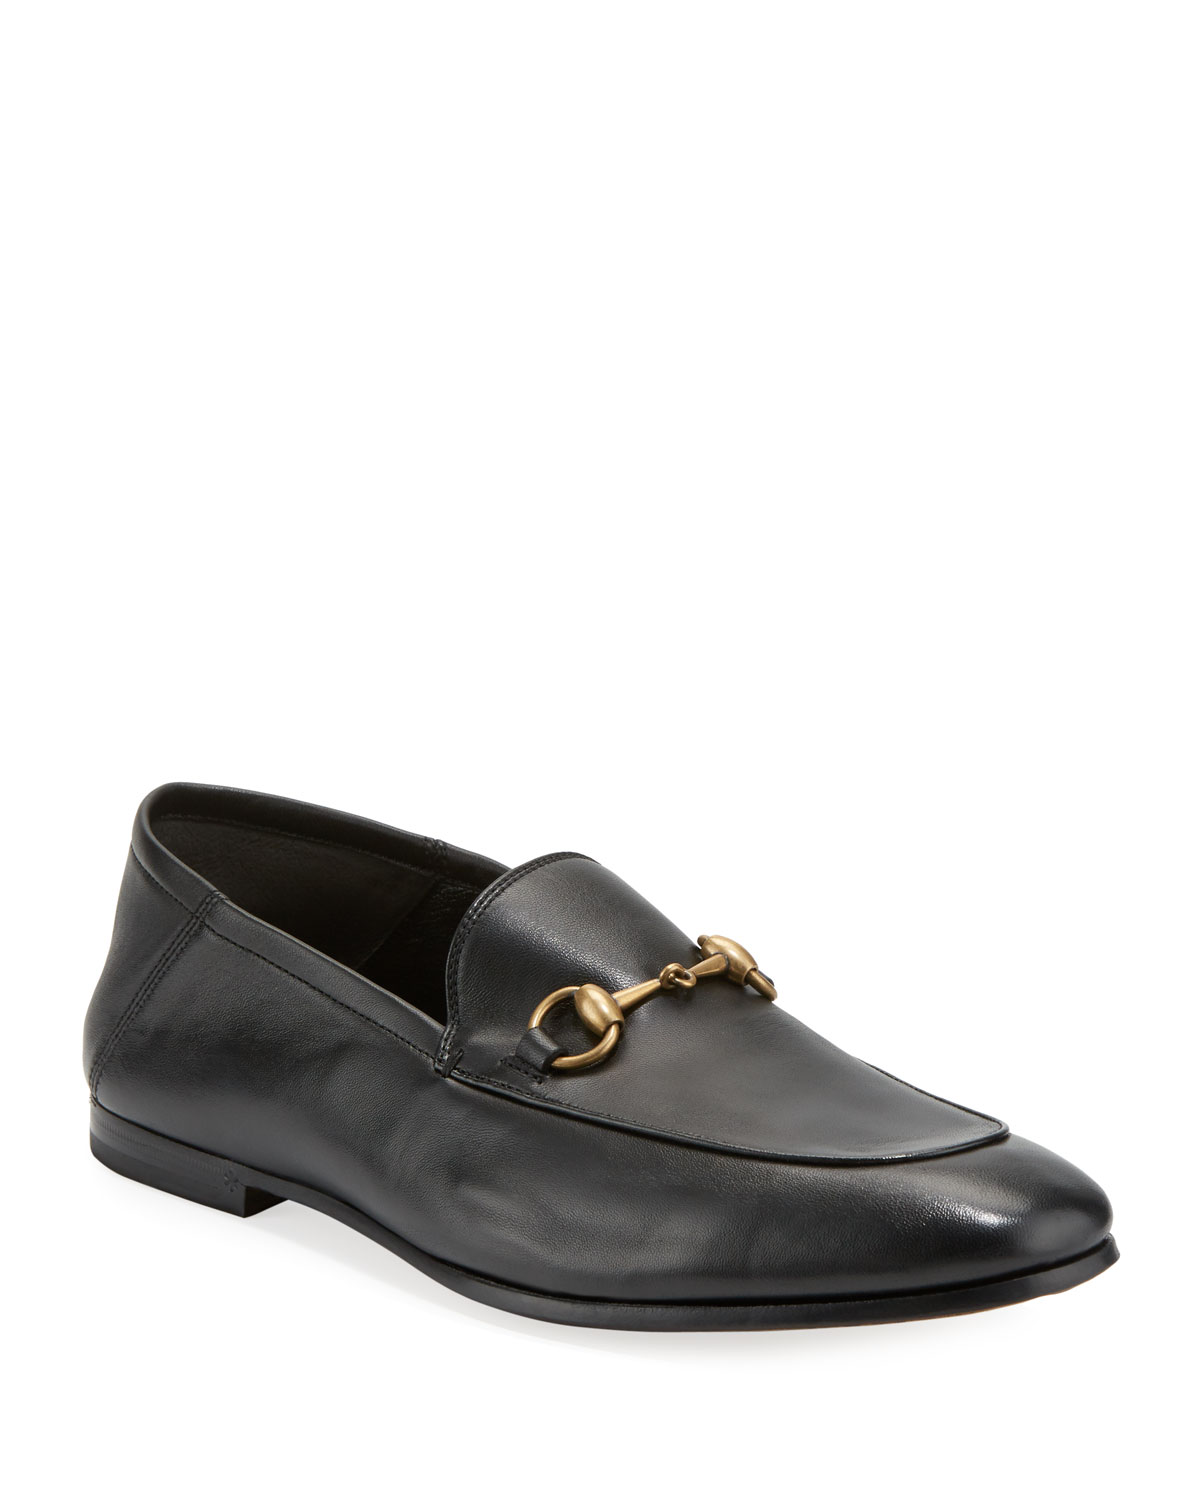 a2b6c80cf79 Quick Look. Gucci · Brixton Soft Leather Bit-Strap Loafer